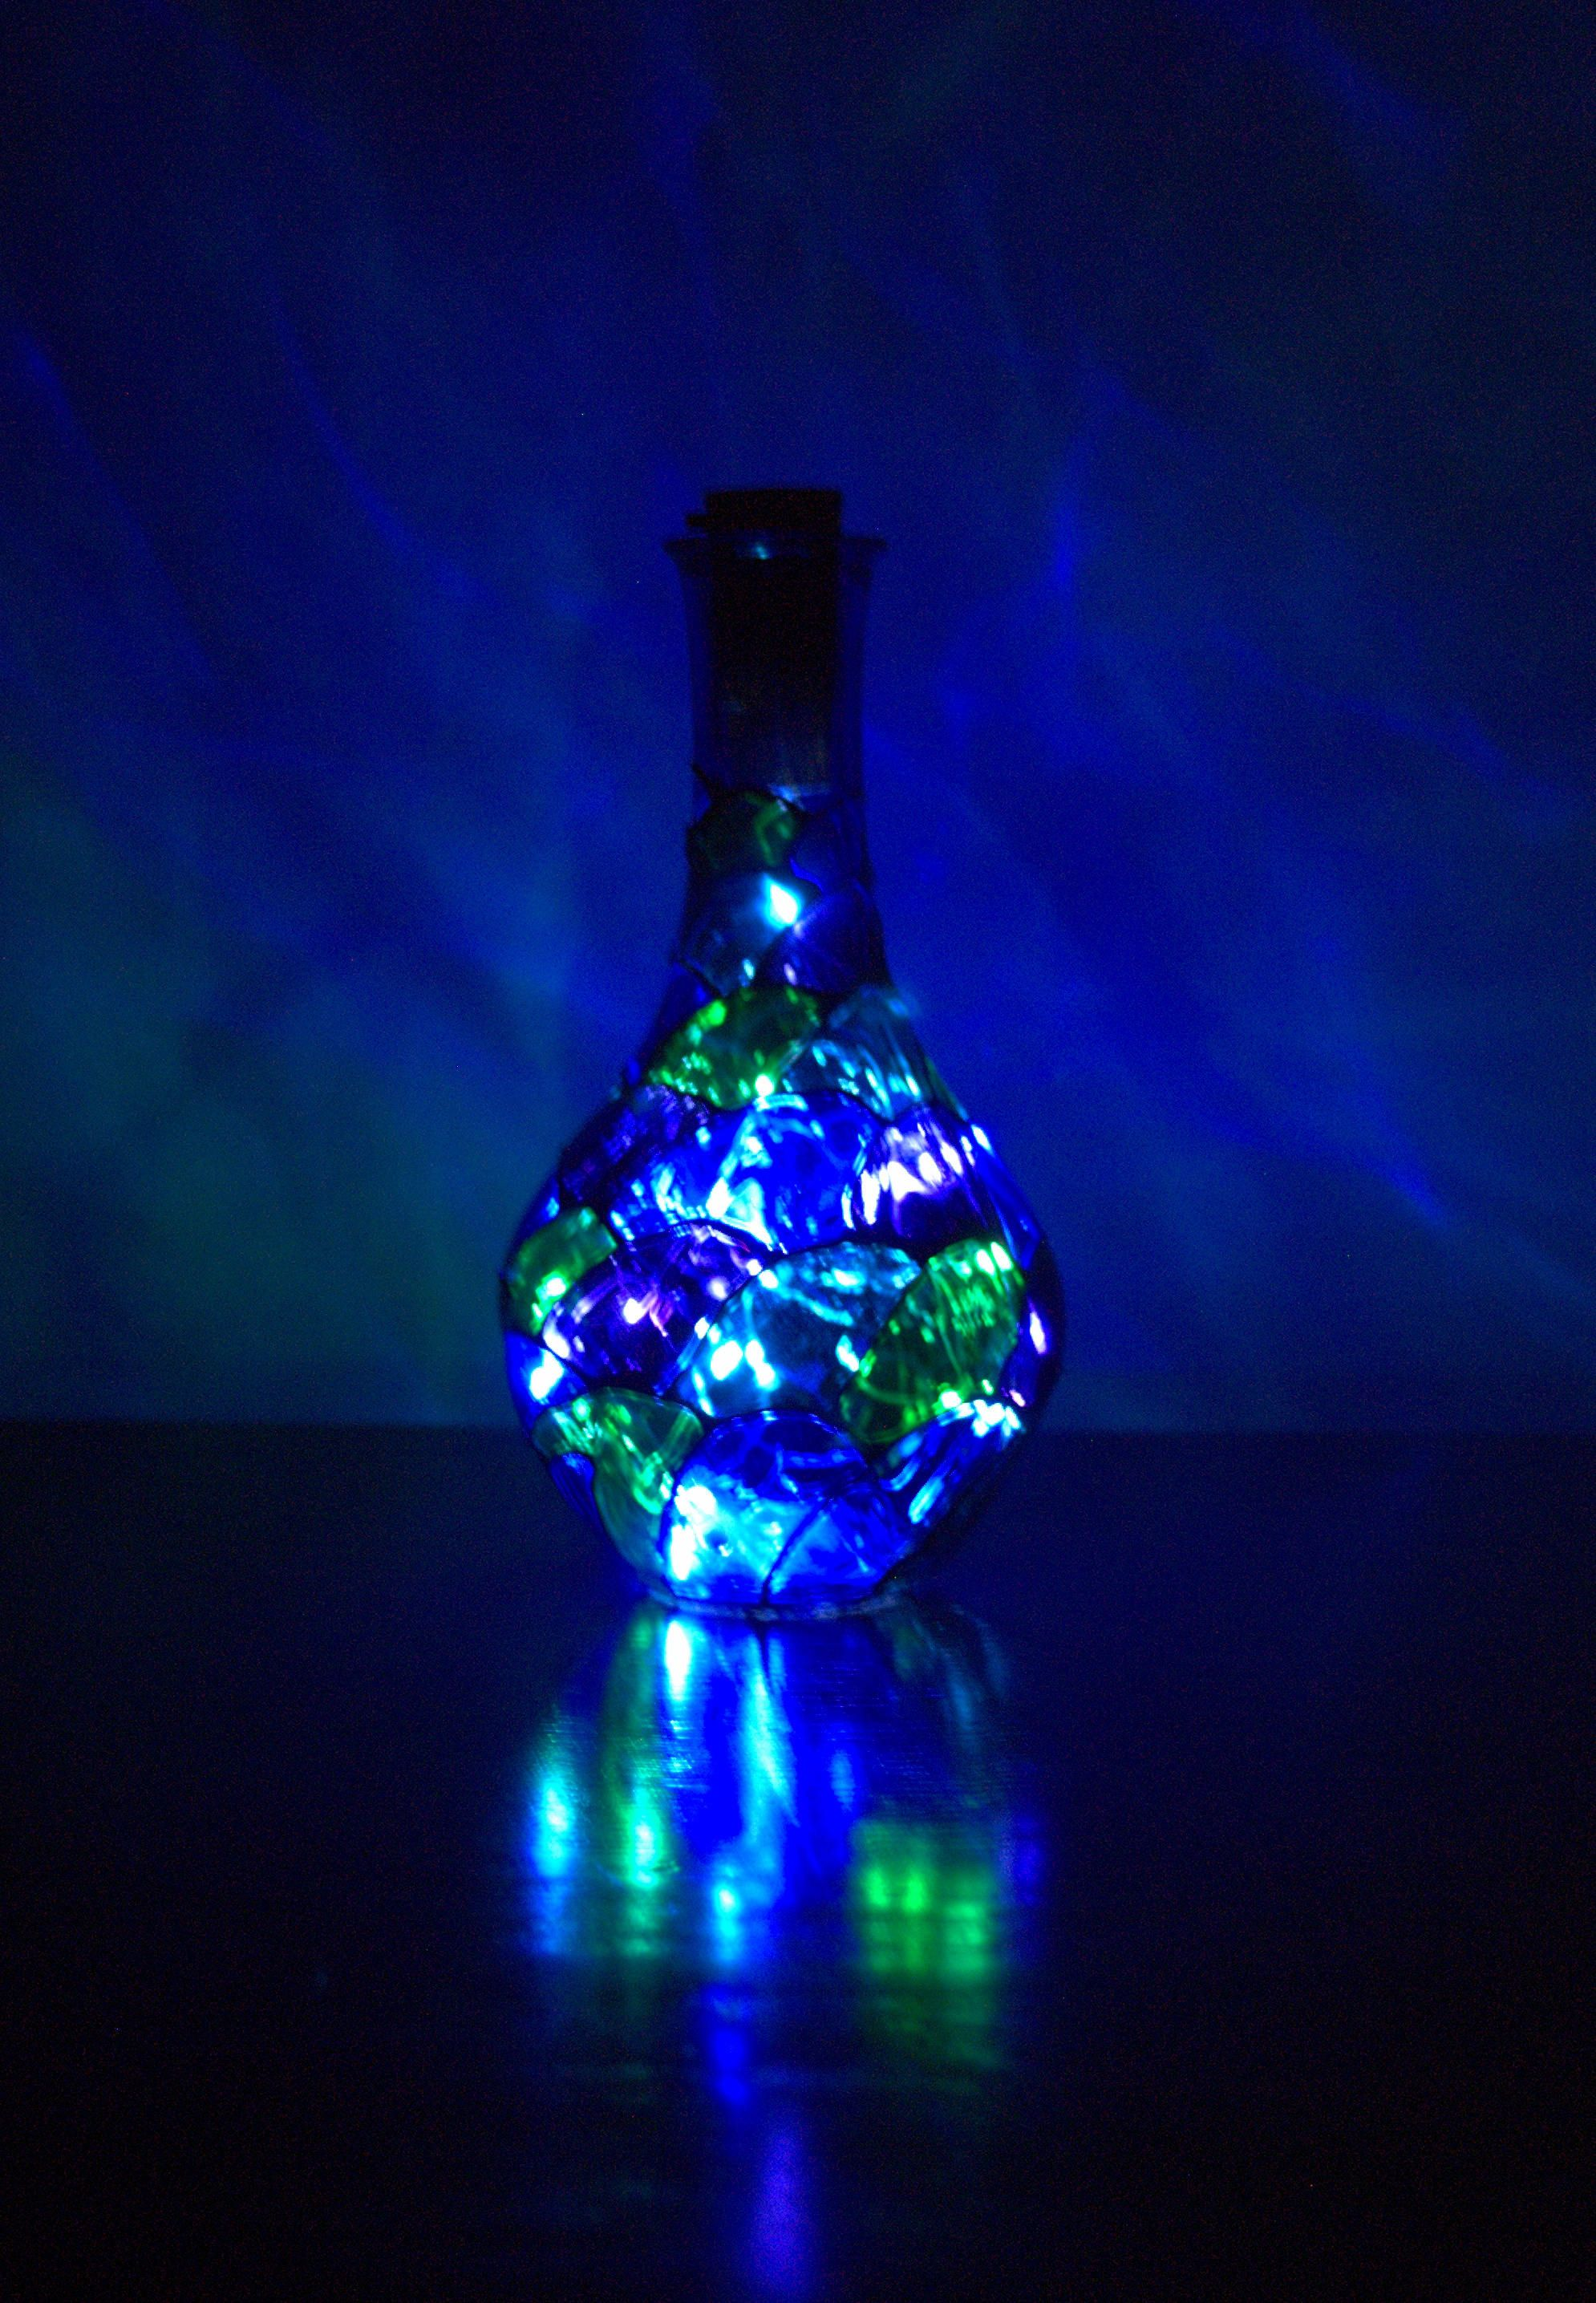 Fairy lamp christmas lights light bottle recycling wine bottle unique hand painted night light ready for shipping gift wrapping by emeralddreamsgift on